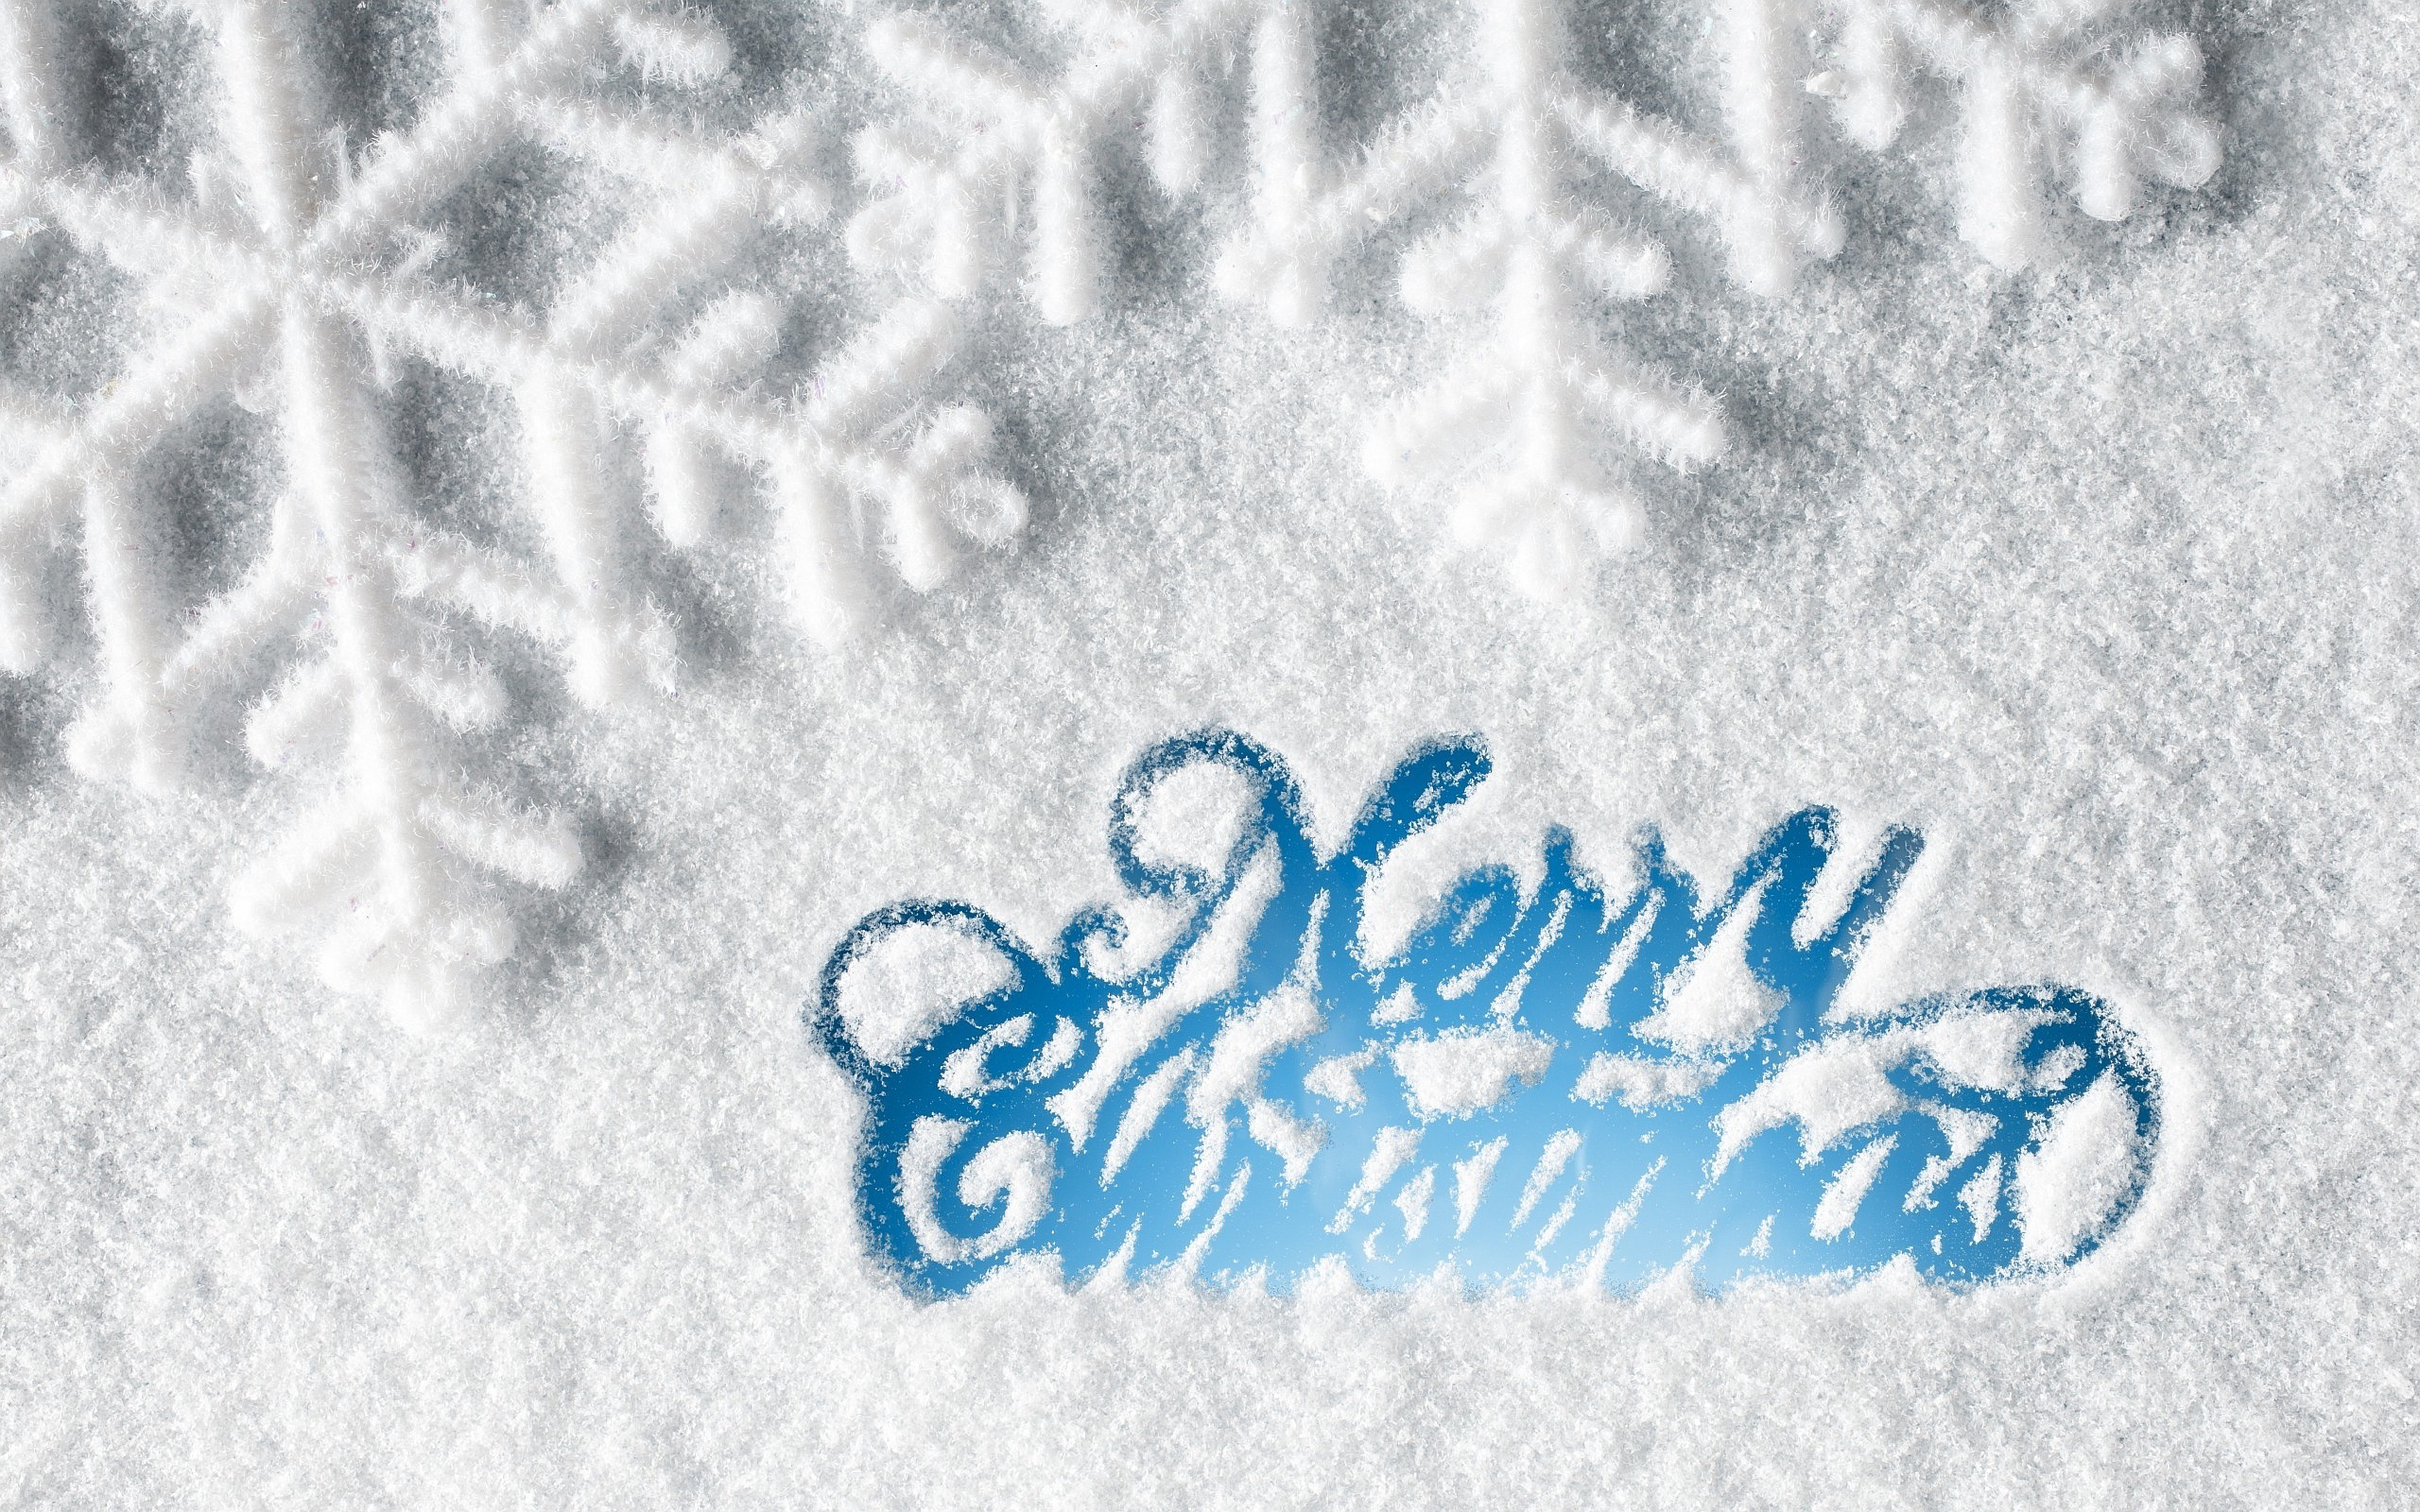 Snow Cool Merry Christmas Wallpapers